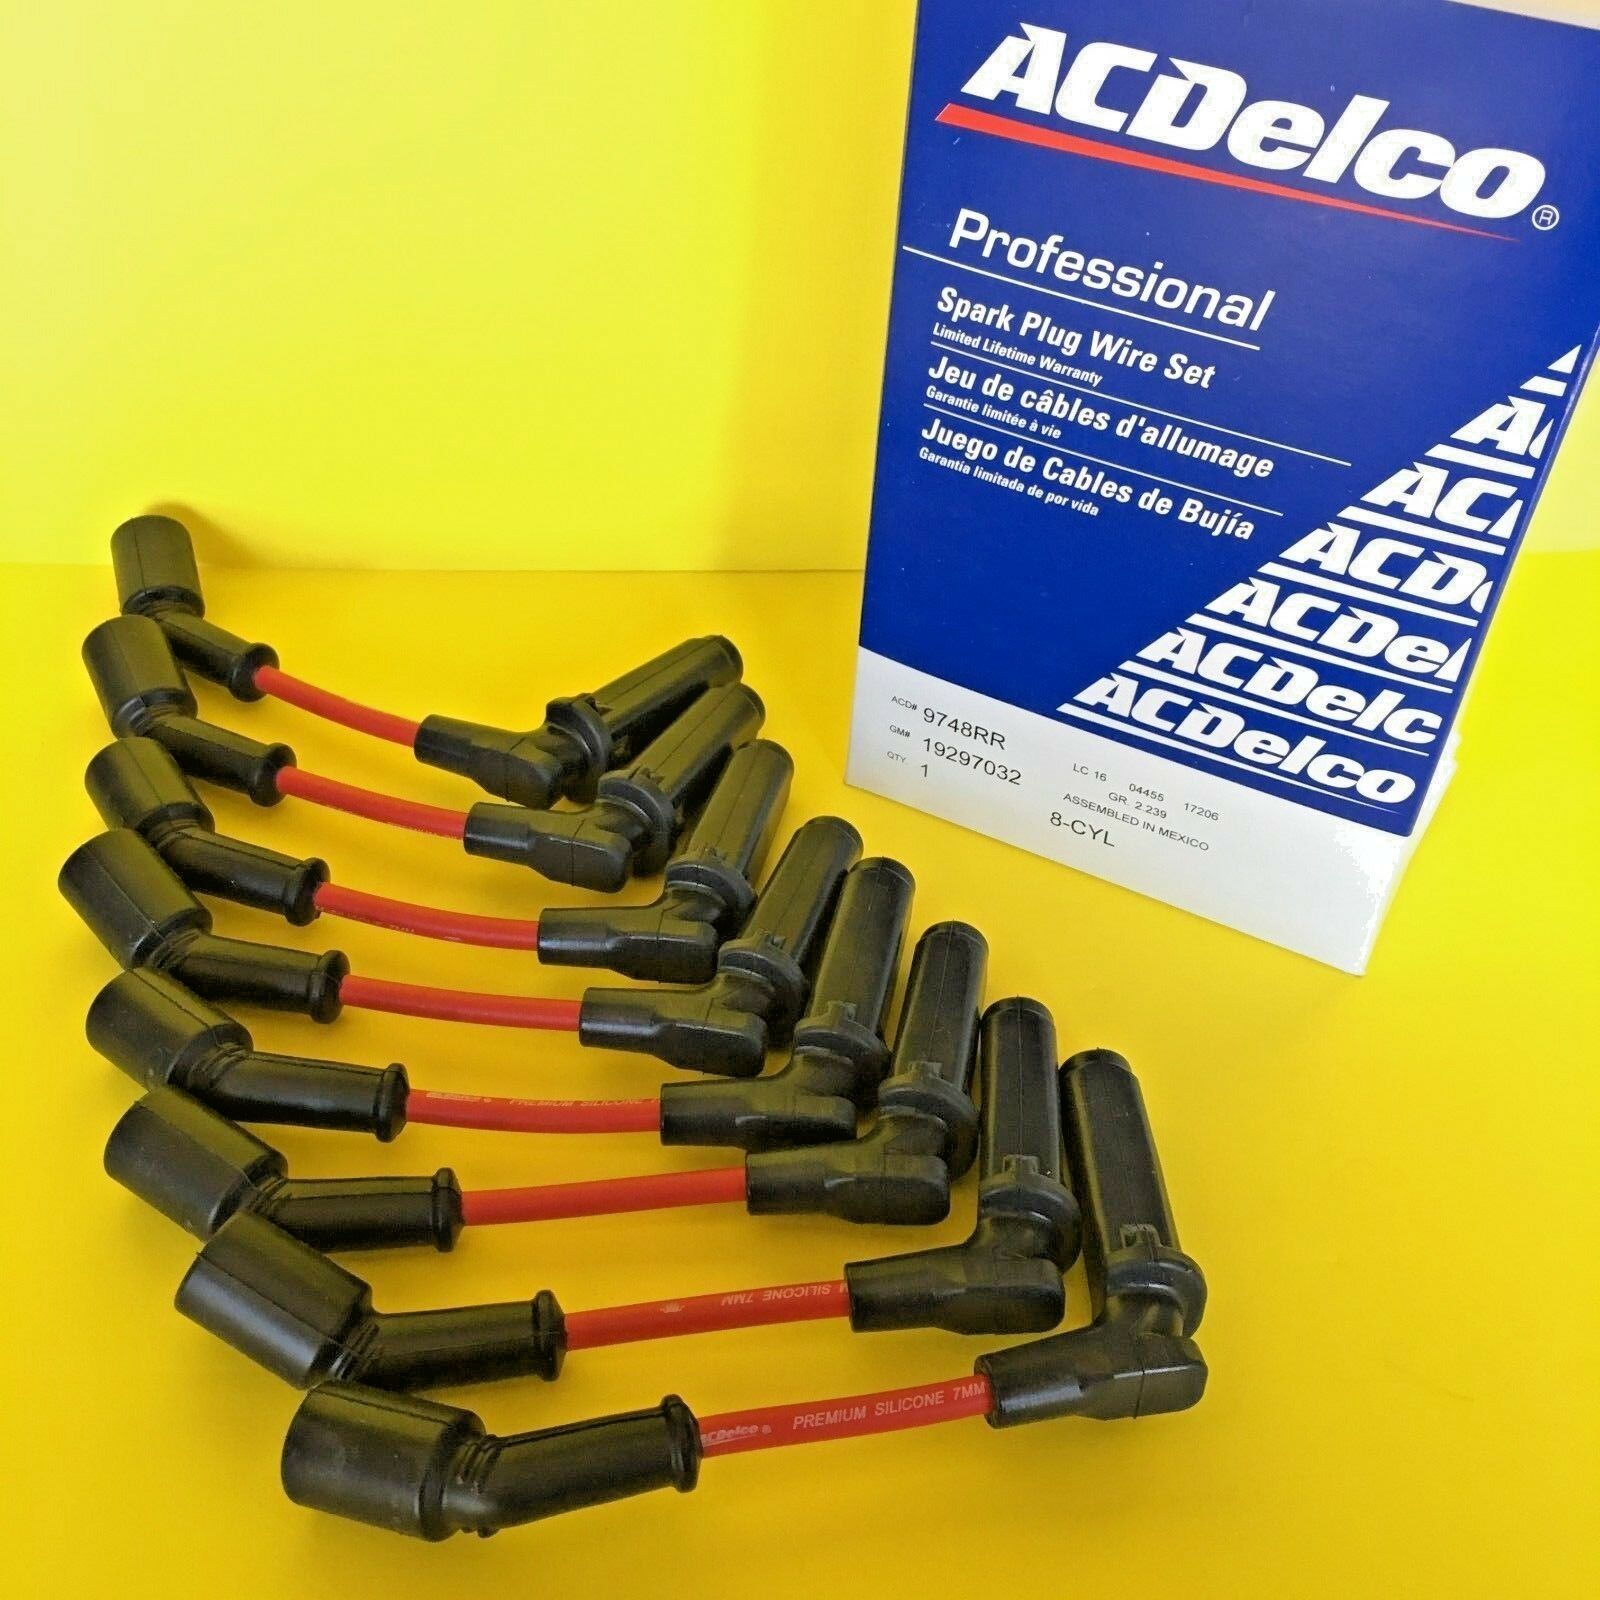 New Oem Acdelco Professional 9748rr Spark Plug Wire Set For Gm 3 Wiring 1 Of 5only Available